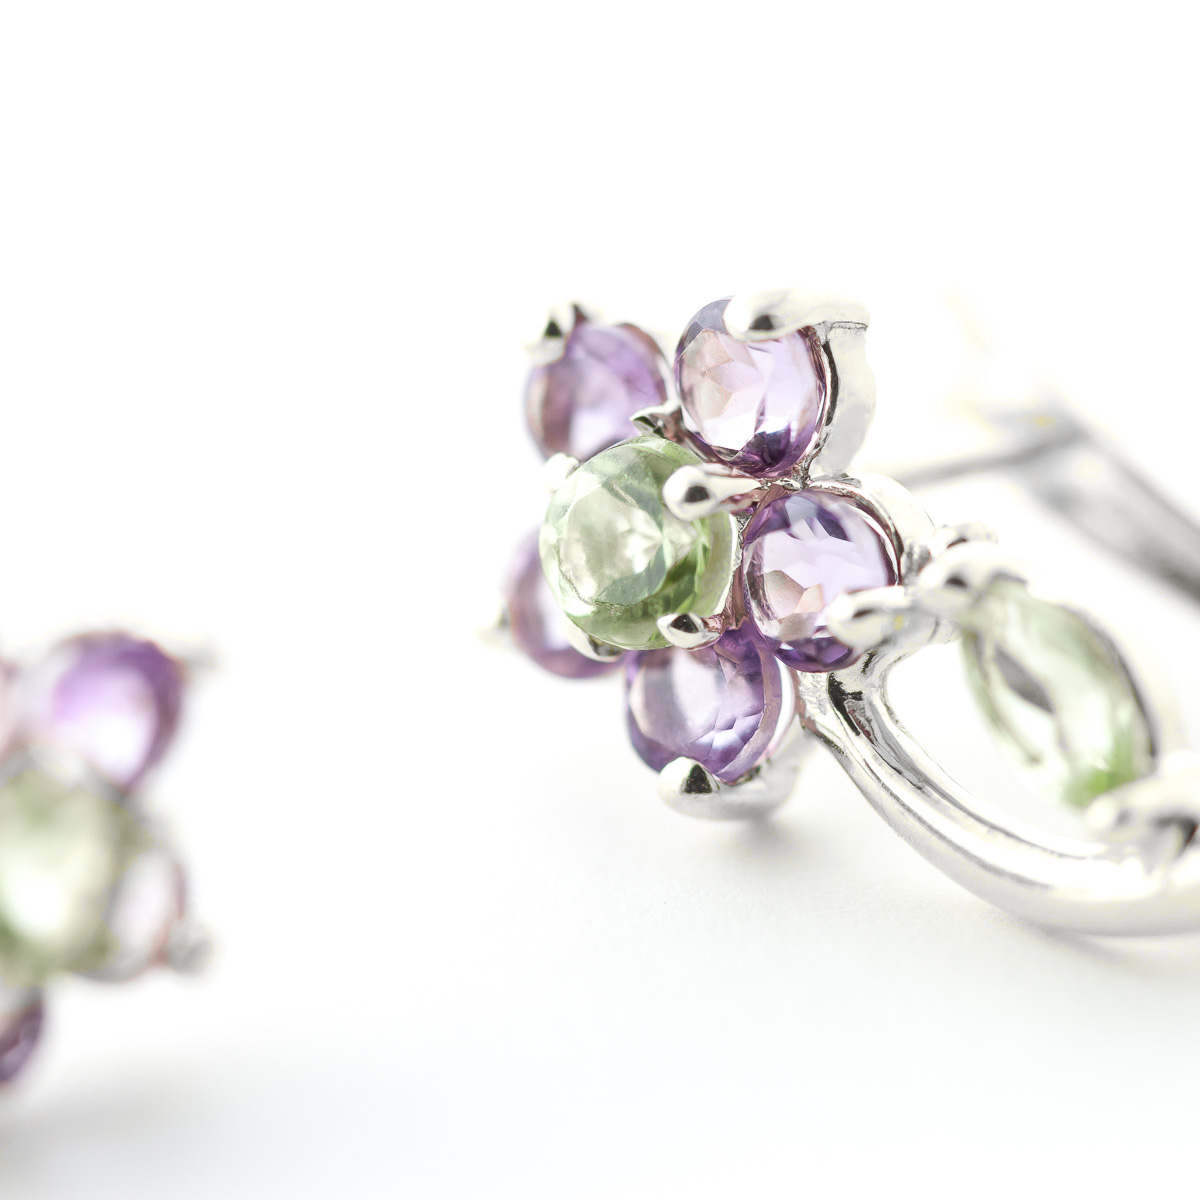 Peridot and Amethyst Flower Stud Earrings 1.72ctw in 9ct White Gold